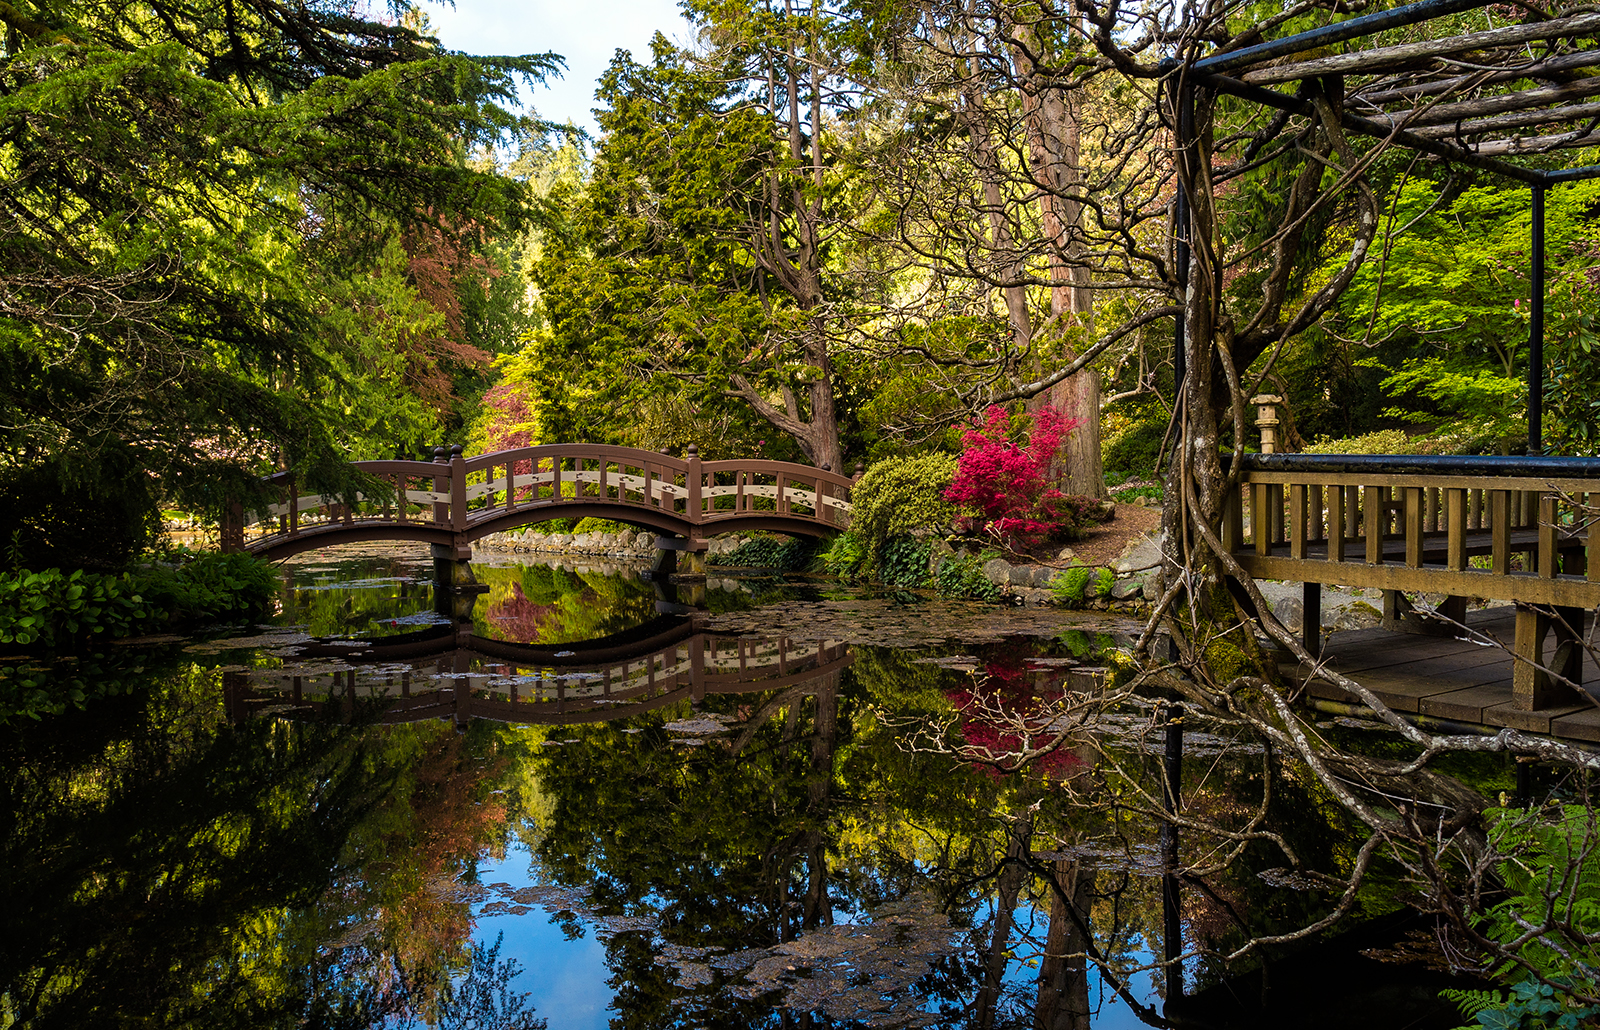 The Japanese Gardens at Hatley Castle